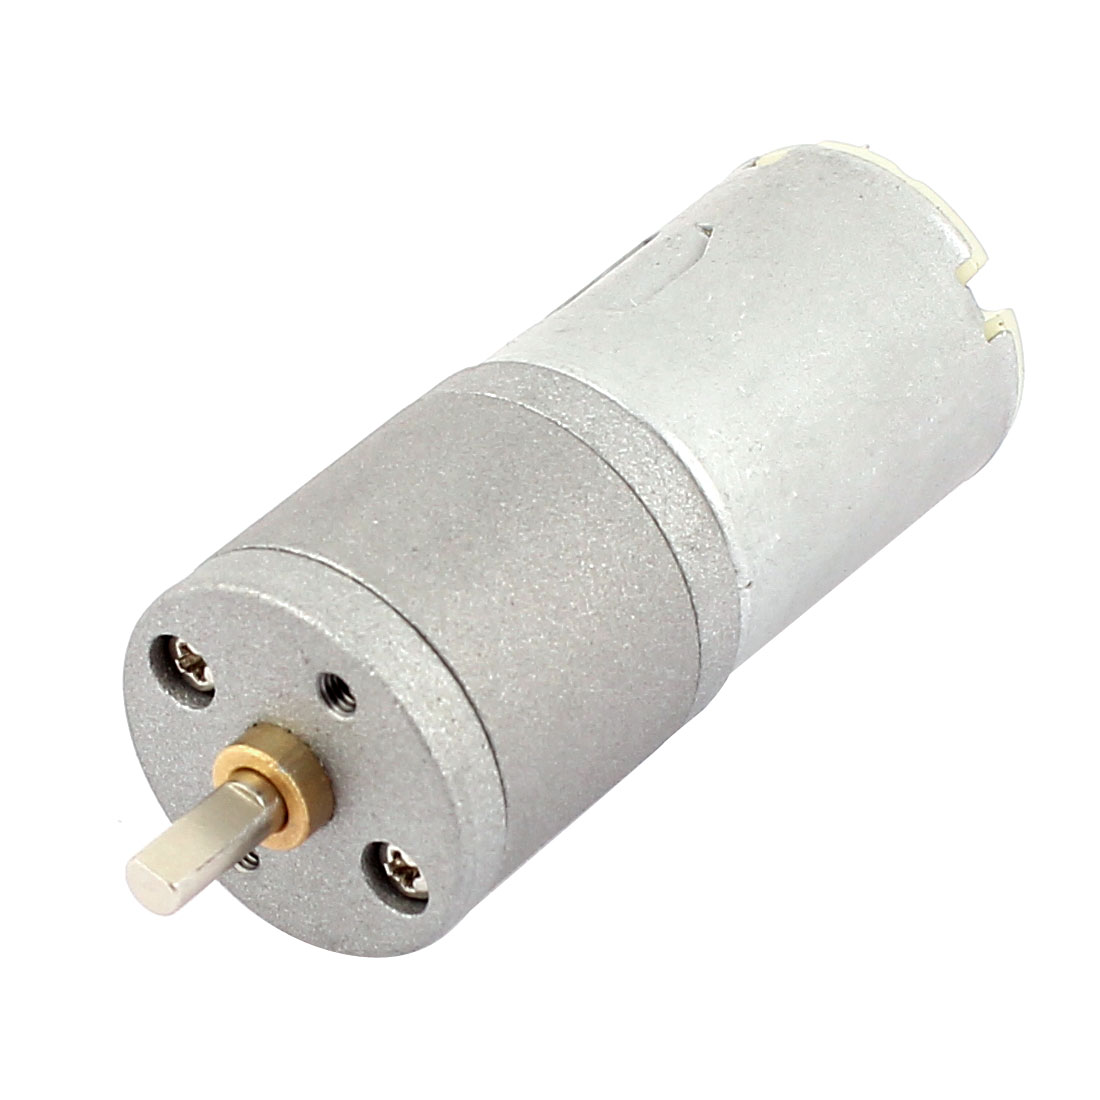 12V 30RPM 4mm Shaft Dia Soldering Pin Cylinder Magnetic Electric Reducer Gear Box DC Geared Motor